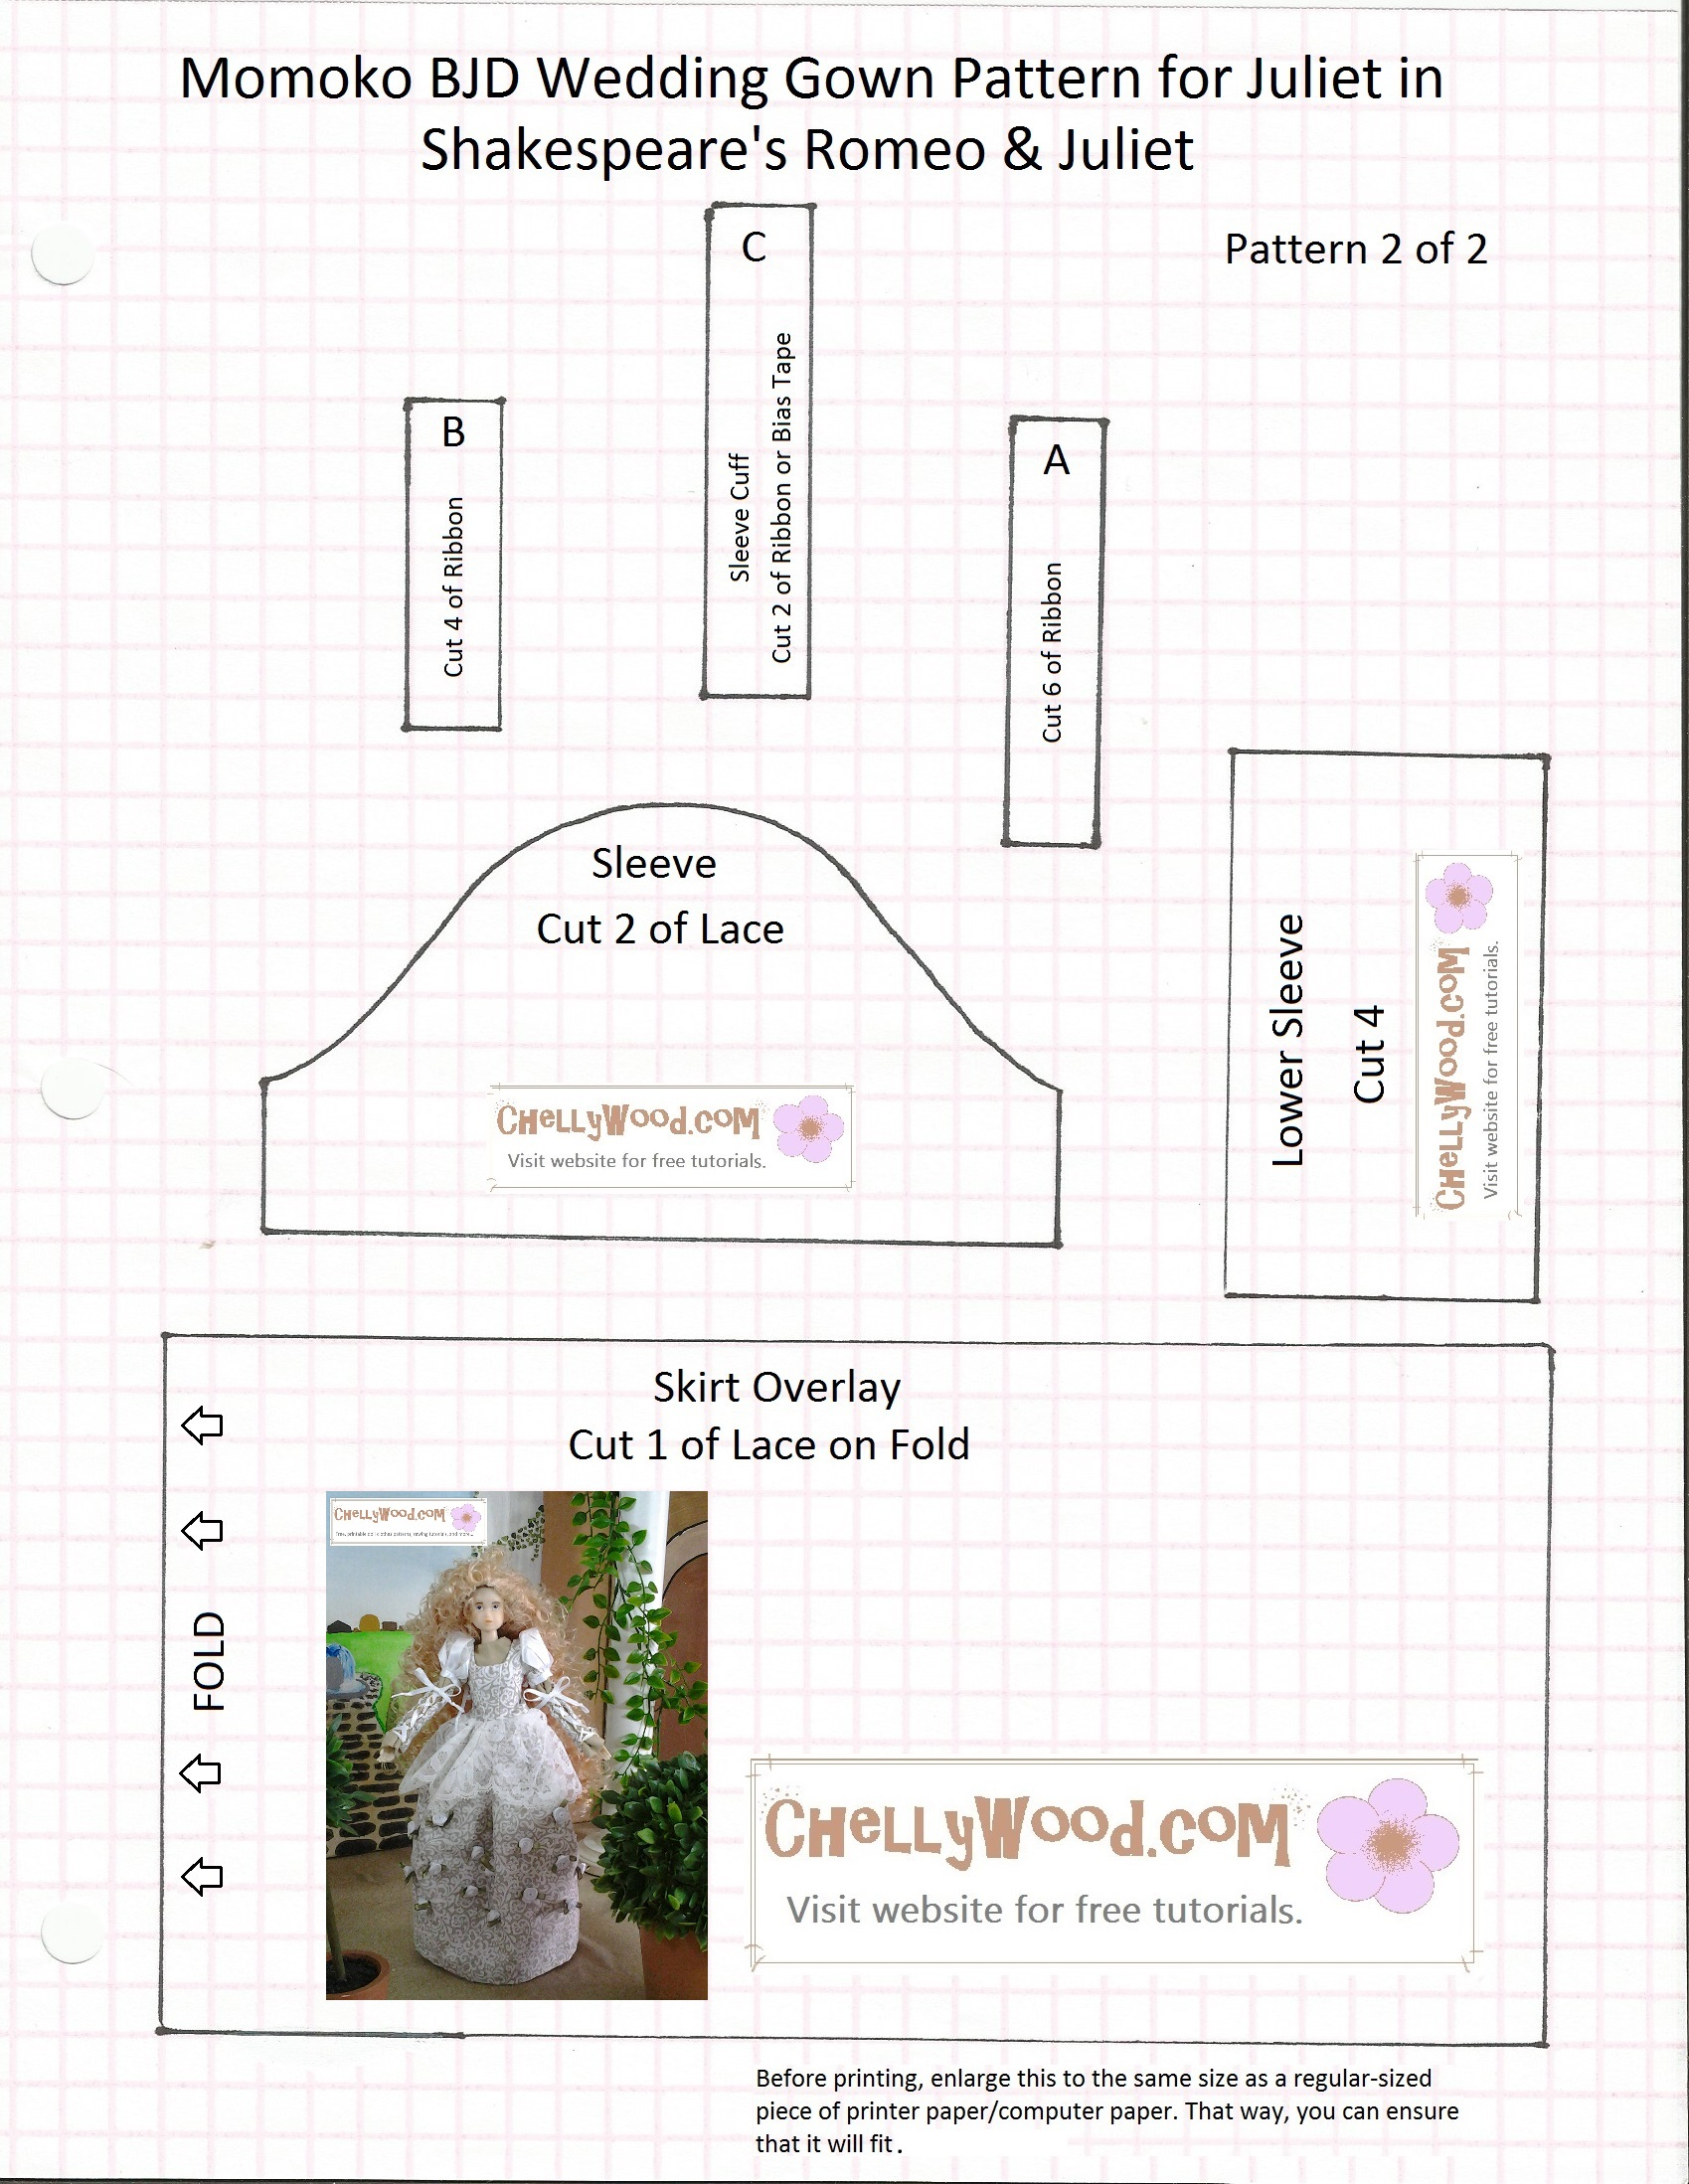 Diy wedding gown for momokodoll w free pattern chellywood pattern 2 jeuxipadfo Image collections